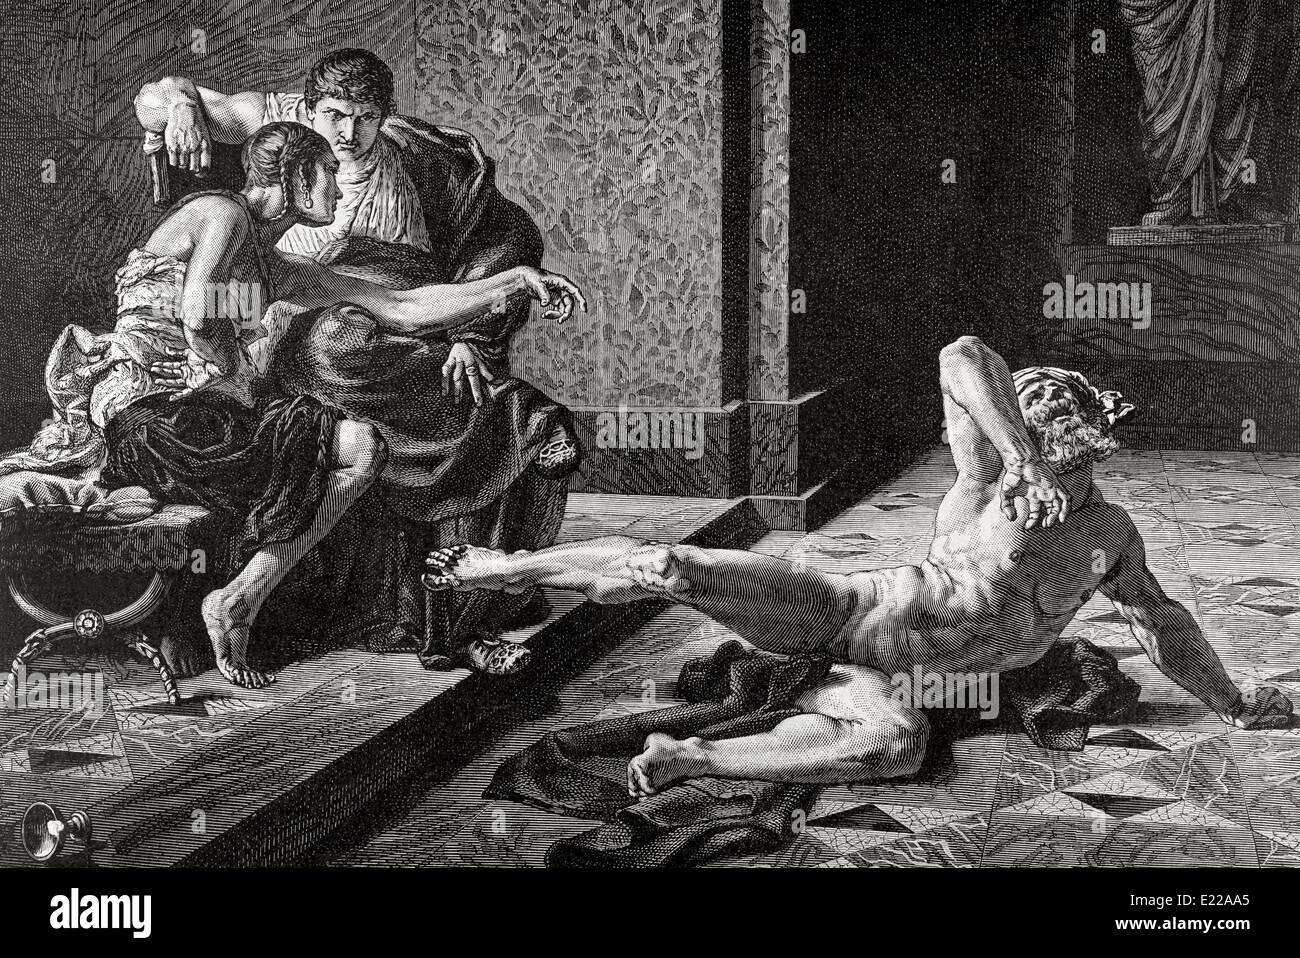 Locusta. Notorious in Ancient Rome for her skill in concocting poisons. Nero and Locusta. Engraving by Duviviso. - Stock Image